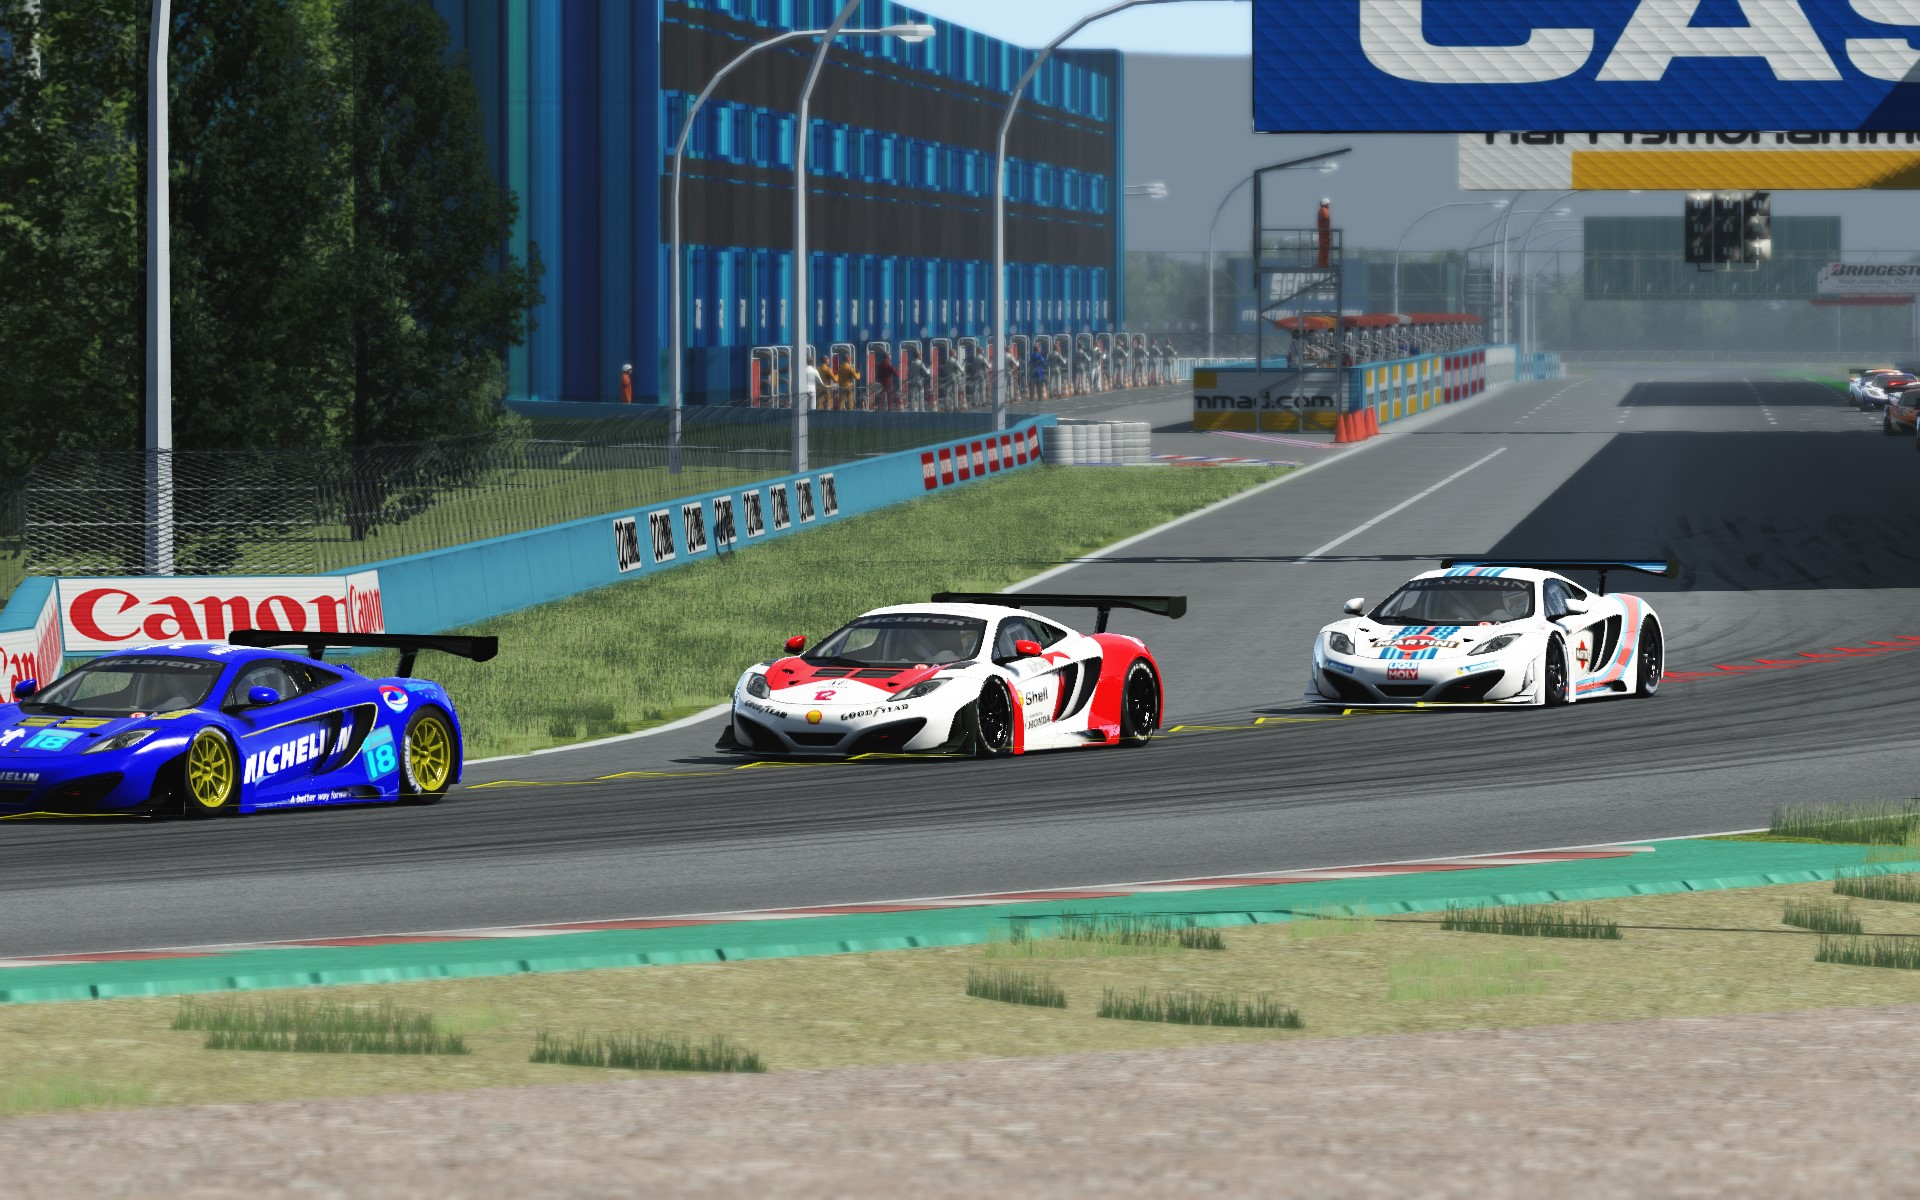 Screenshot_mclaren_mp412c_gt3_sentul_circuit_30-7-115-12-40-40.jpg